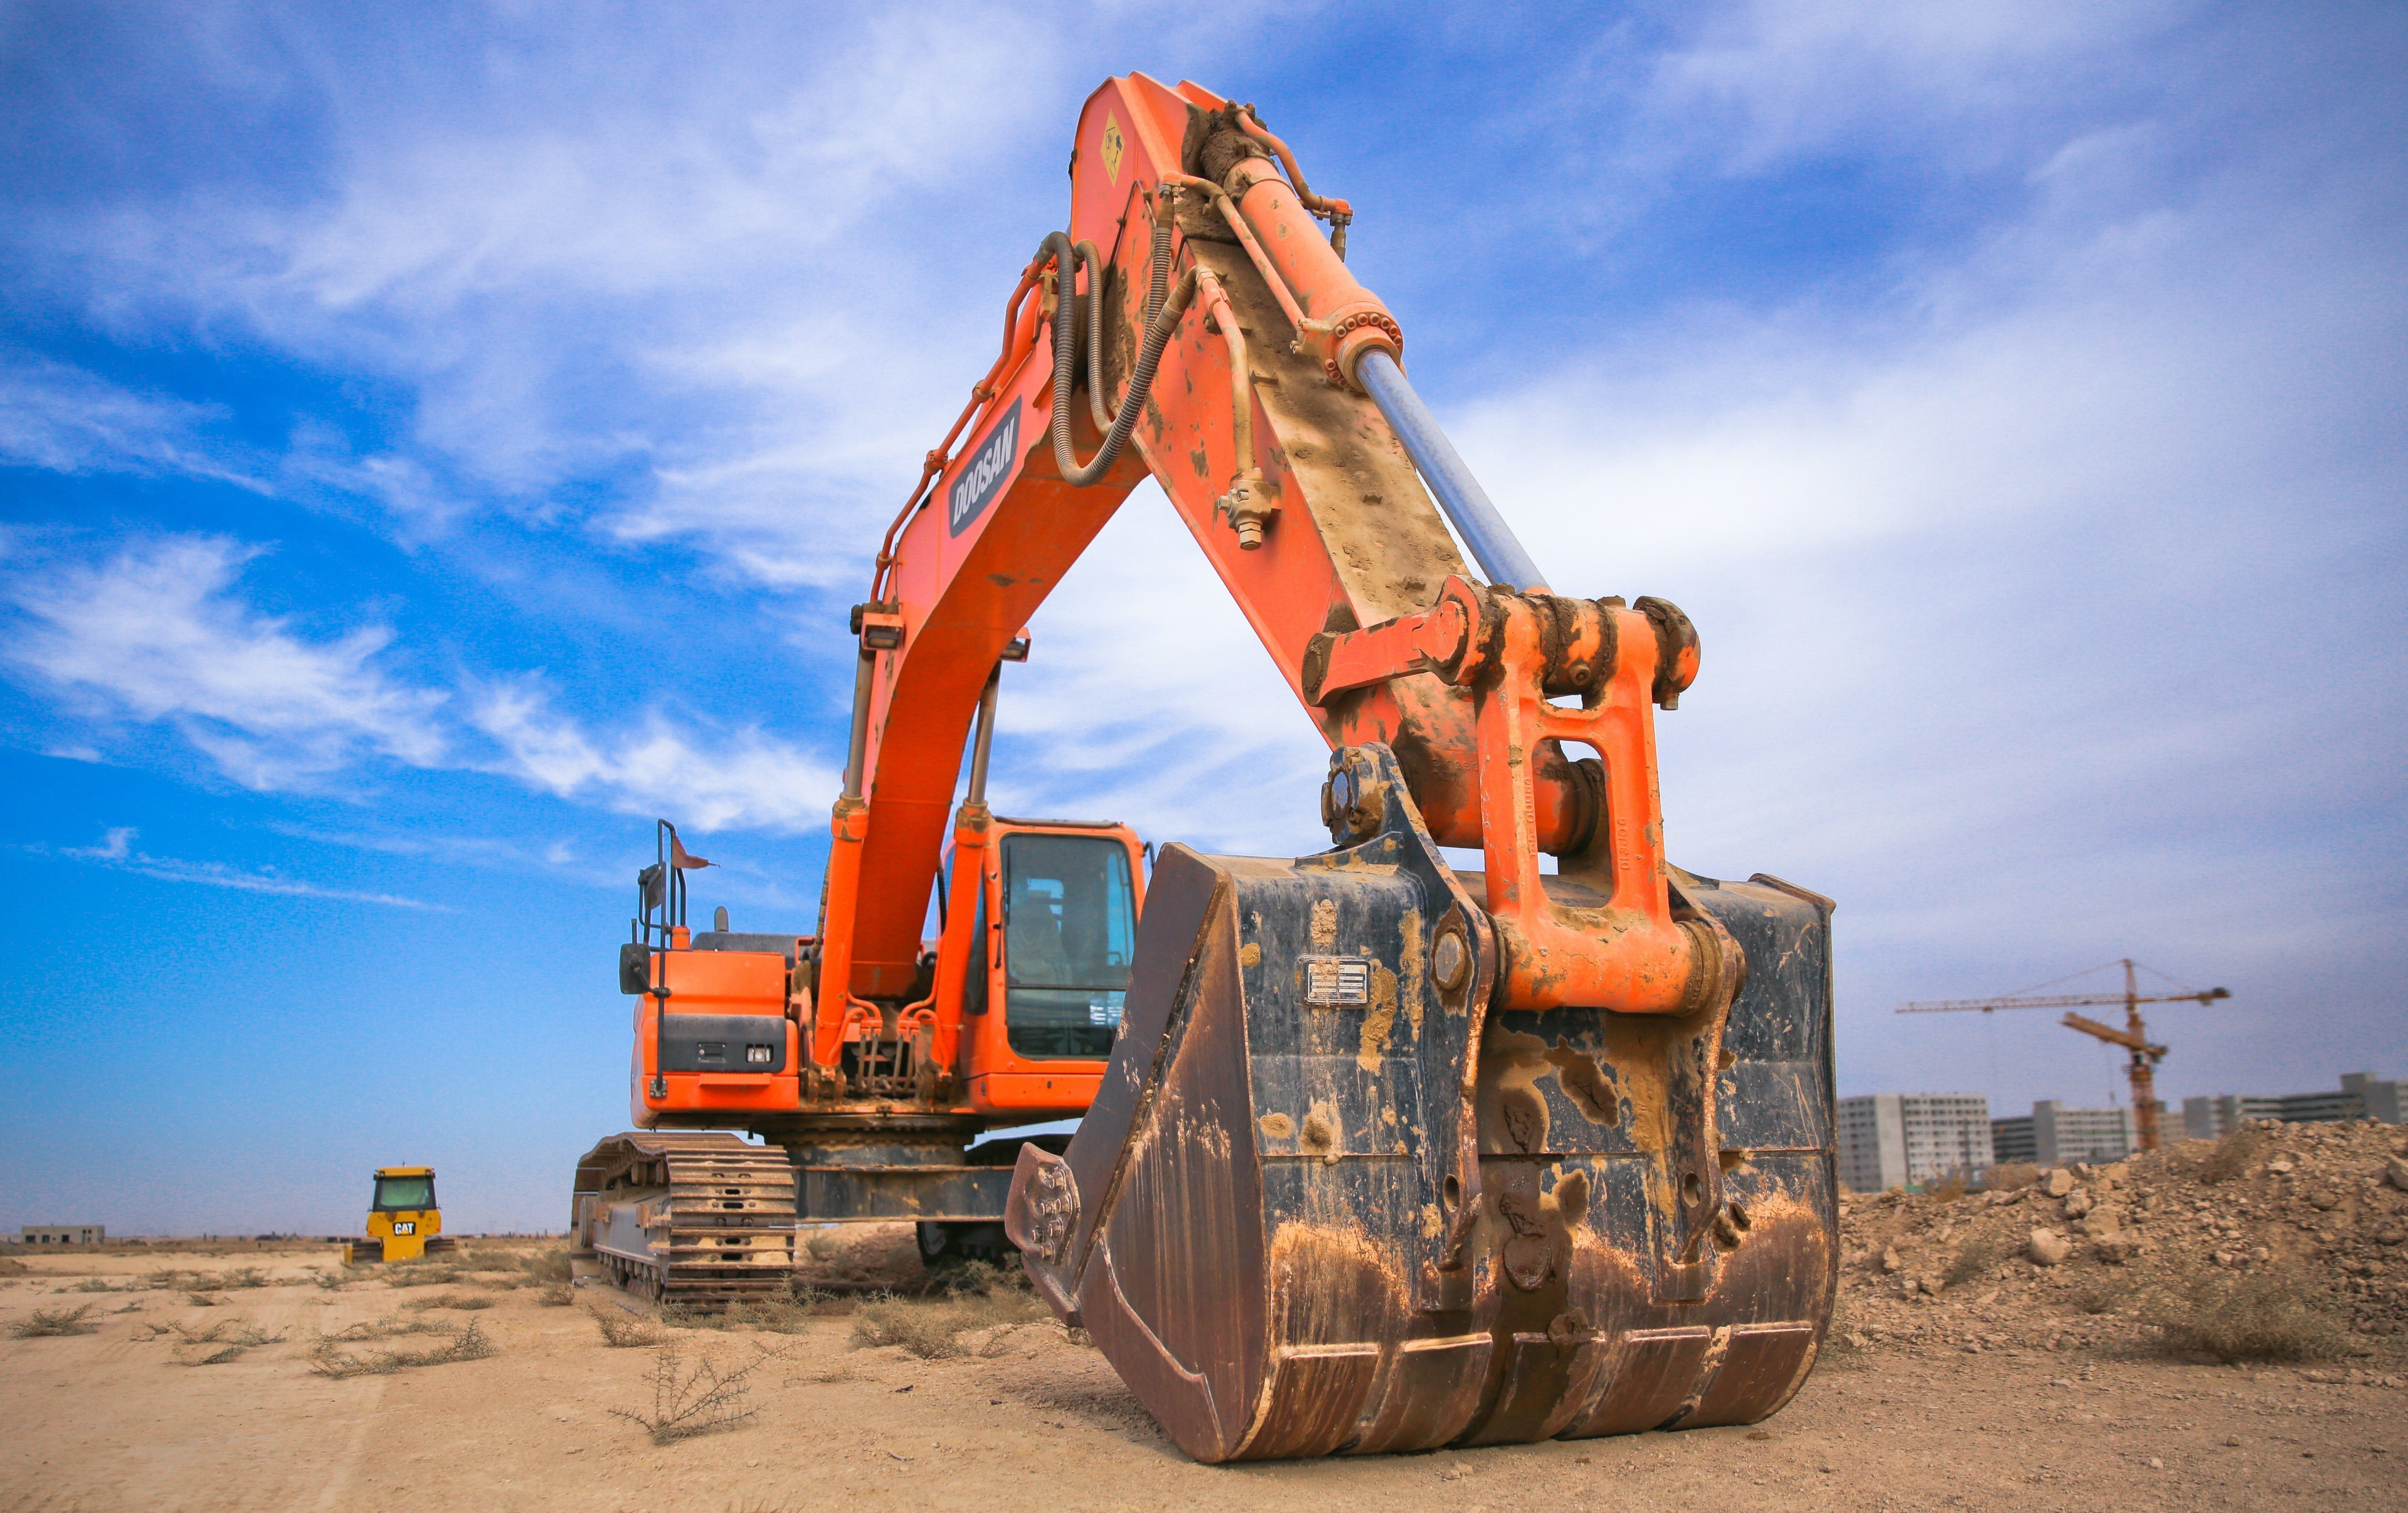 Excavators - All You Need To Know